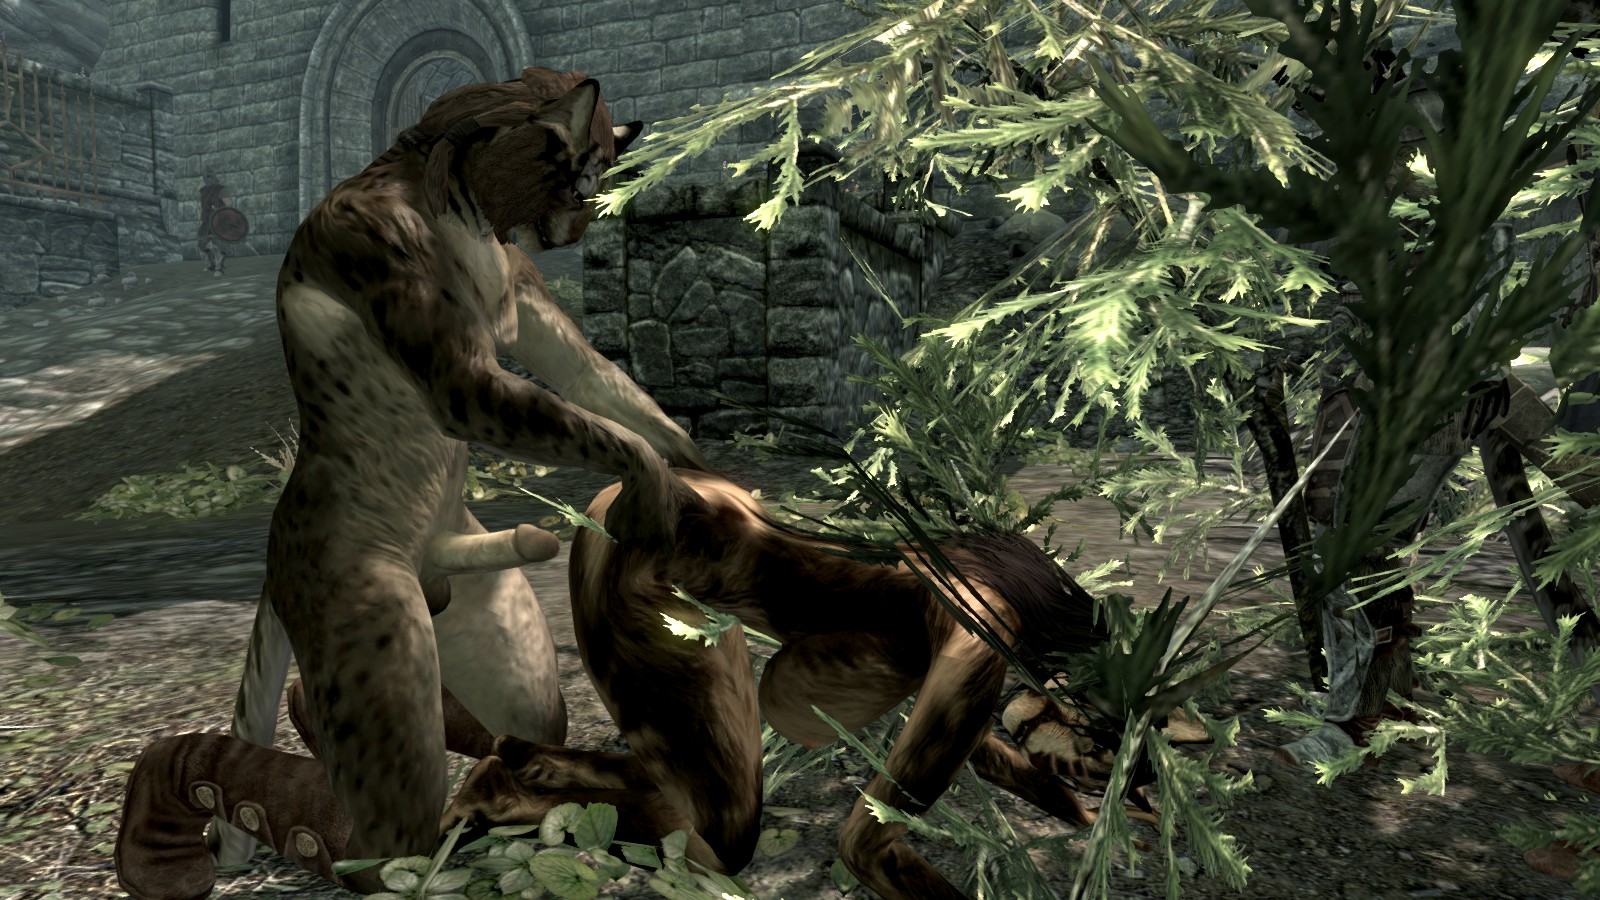 Skyrim khajiit rule 34 porno nasty breasts